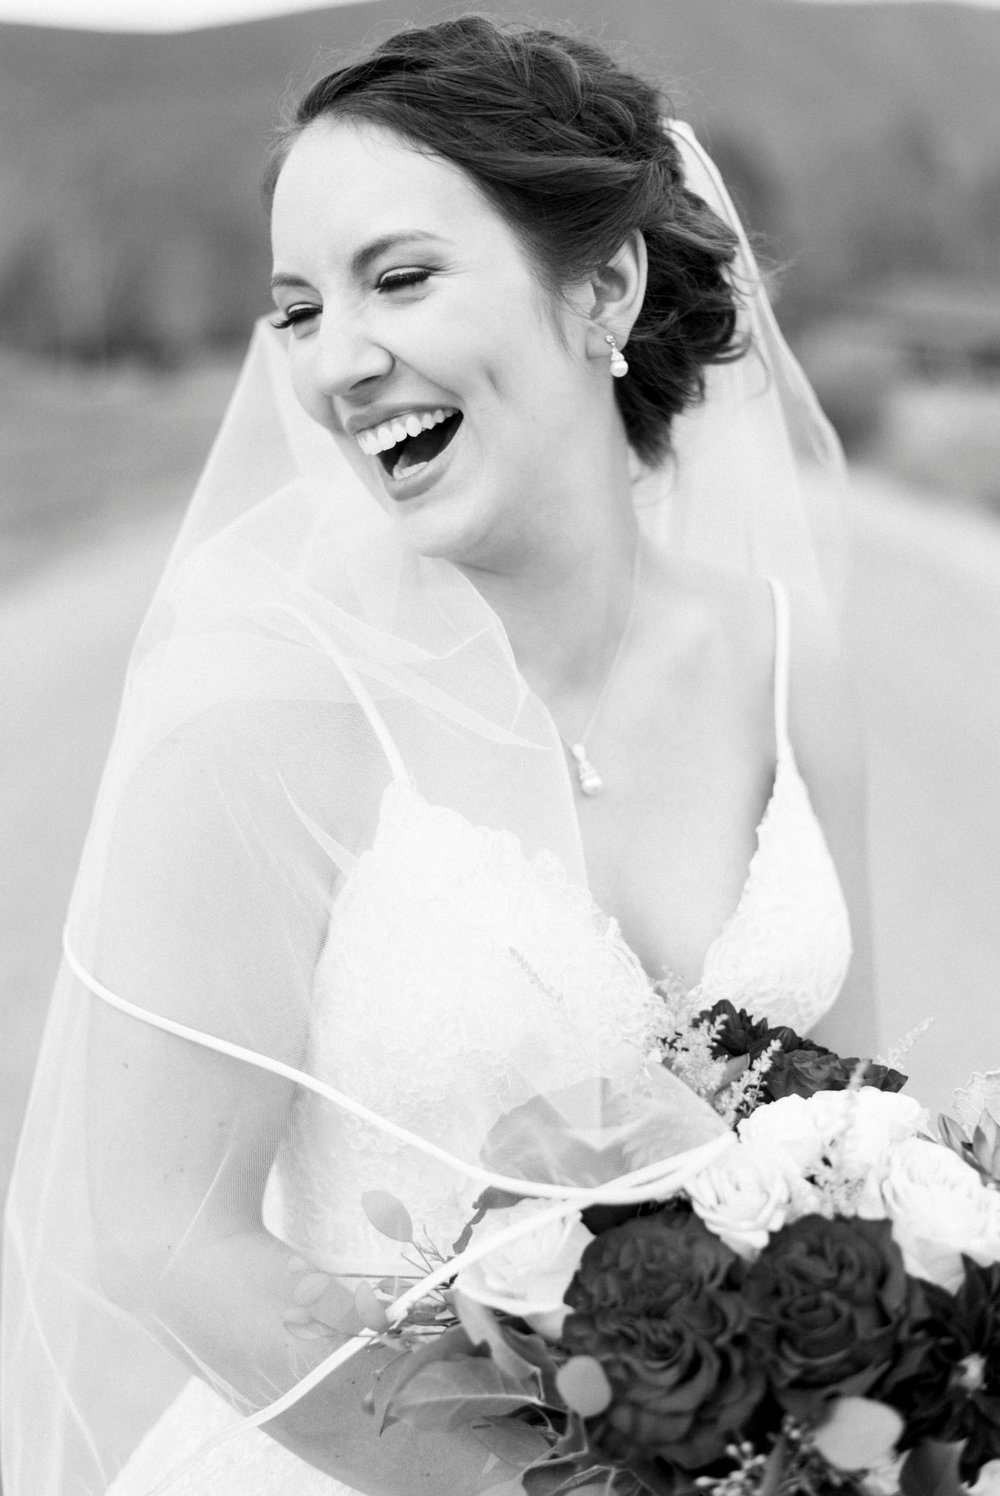 IrvineEstate_LexingtonVA_Wedding_FallWedding_VirginiaWeddingPhotographer 48.jpg